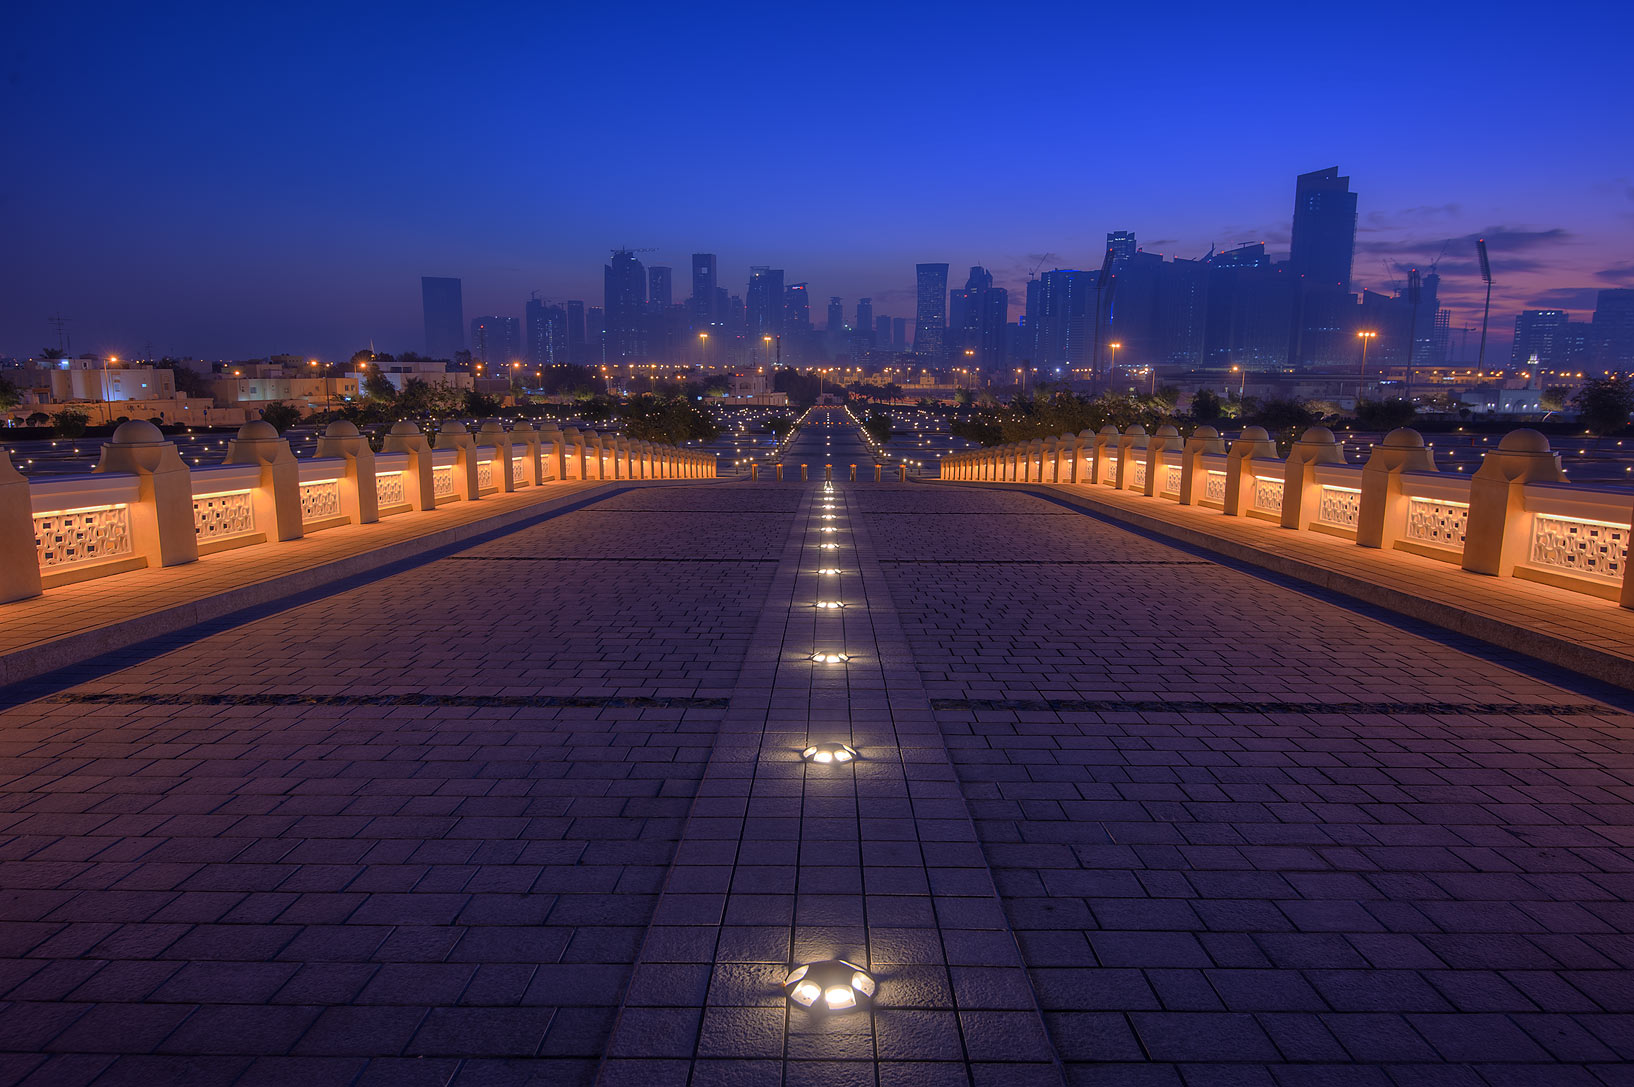 Grand entrance of State Mosque (Sheikh Muhammad...Wahhab Mosque) at morning. Doha, Qatar